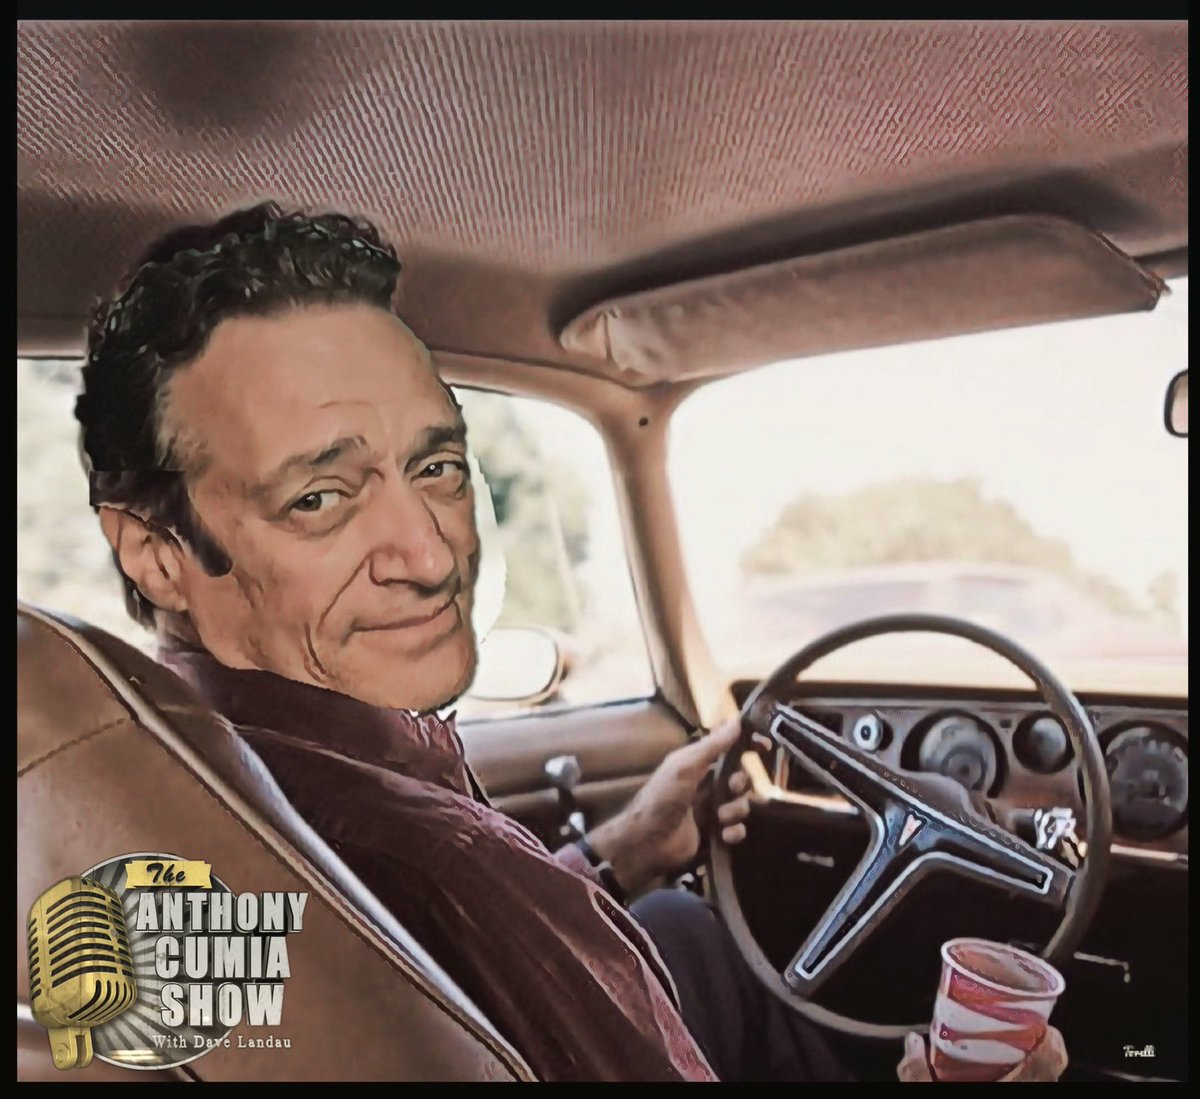 @thecumiashow  #TACS Episode #1077  @CompoundBoss & @LandauDave (Dave is off this week on assignment)at 4pm. Only on #compoundmedia #subscribe  #mustseetv #nonstoplaughs https://t.co/wbVcPZoksr